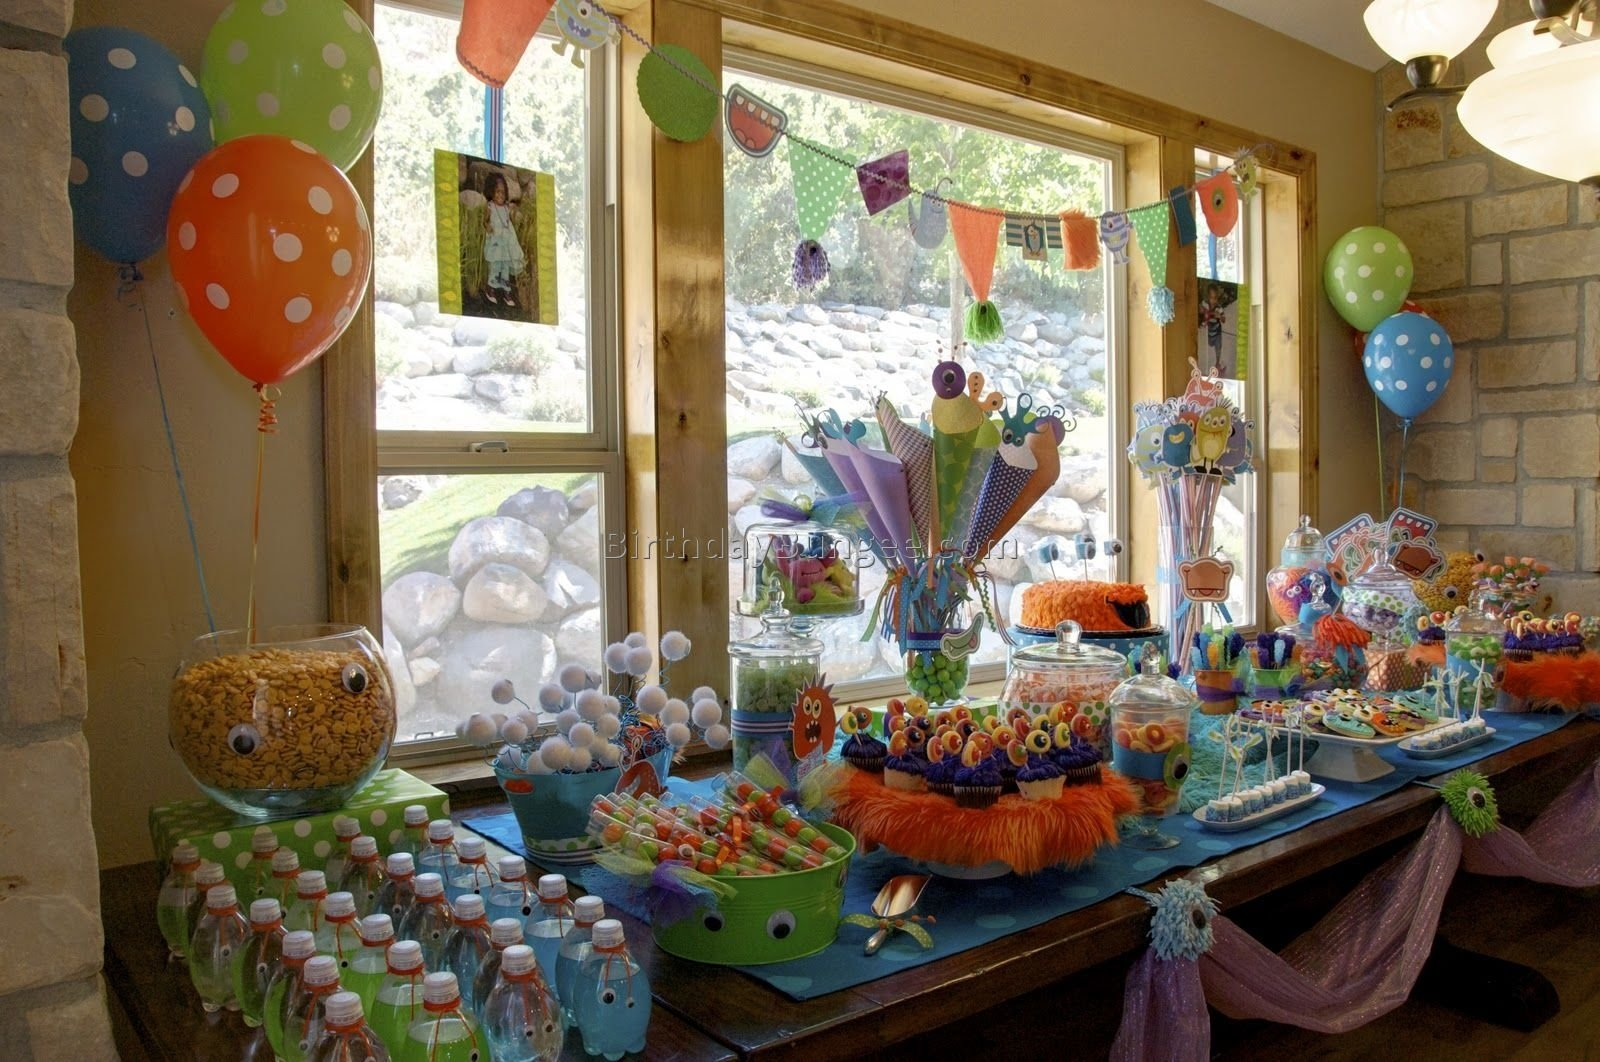 10 Best Birthday Ideas For A 2 Year Old Boy themes birthday 6 year old boy birthday party ideas at home in best 17